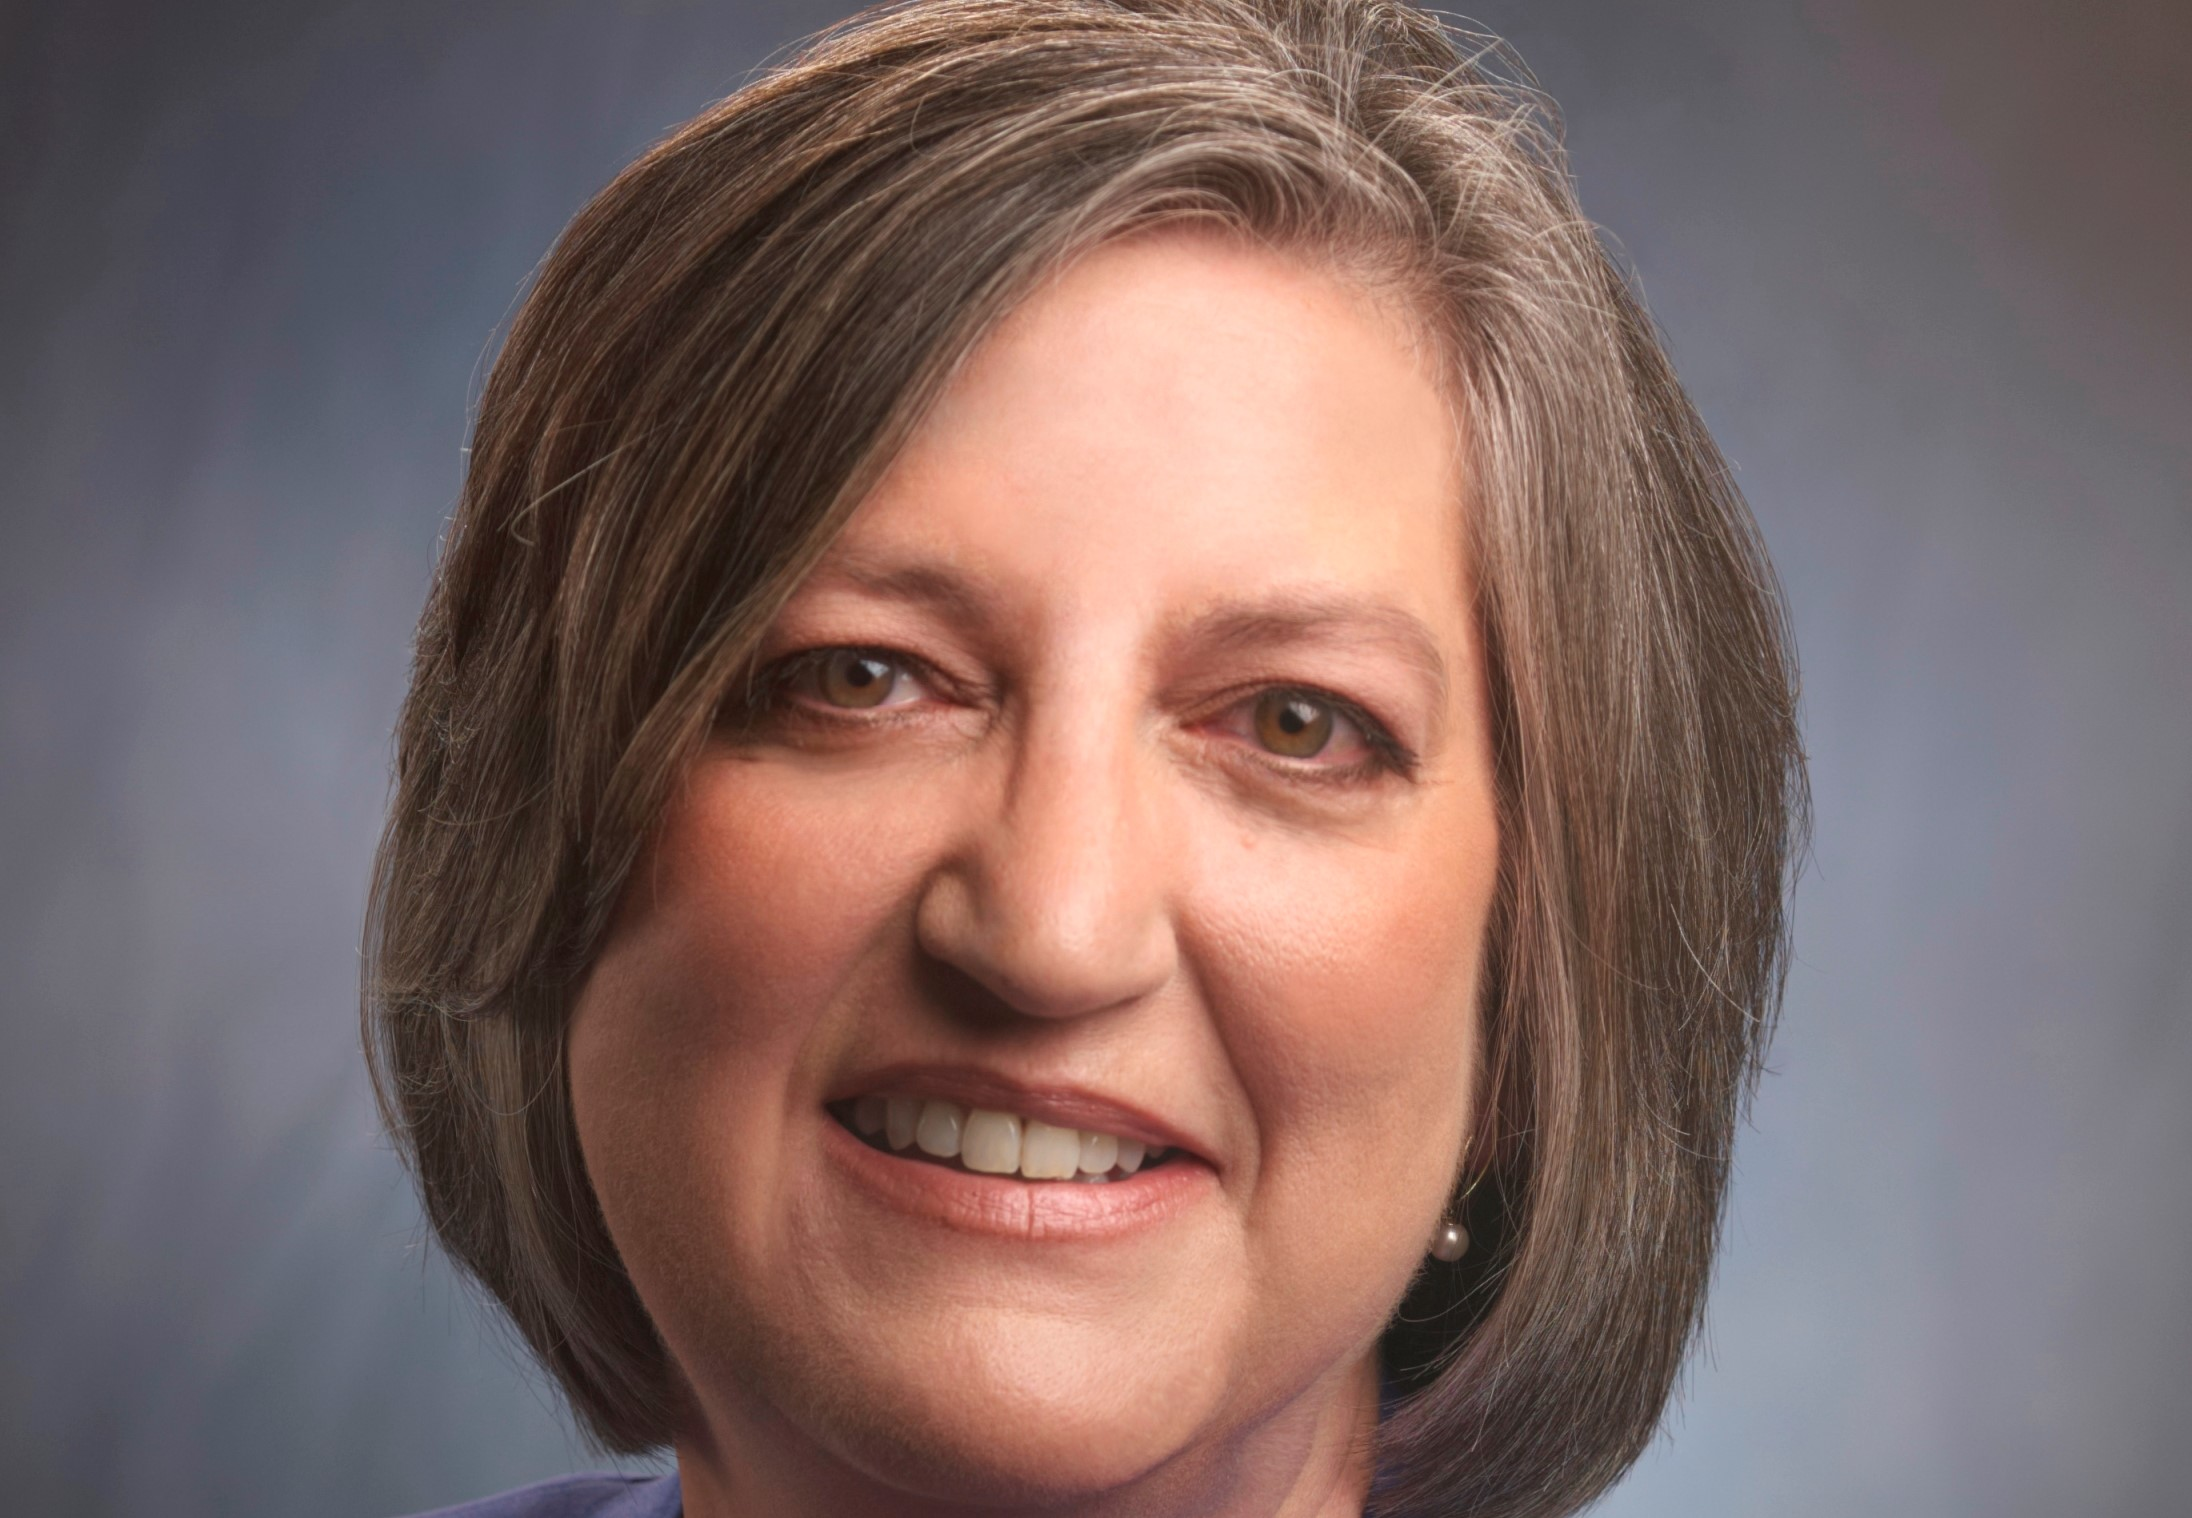 Kathi Cozzone Elected President of County Commissioners Association of Pennsylvania